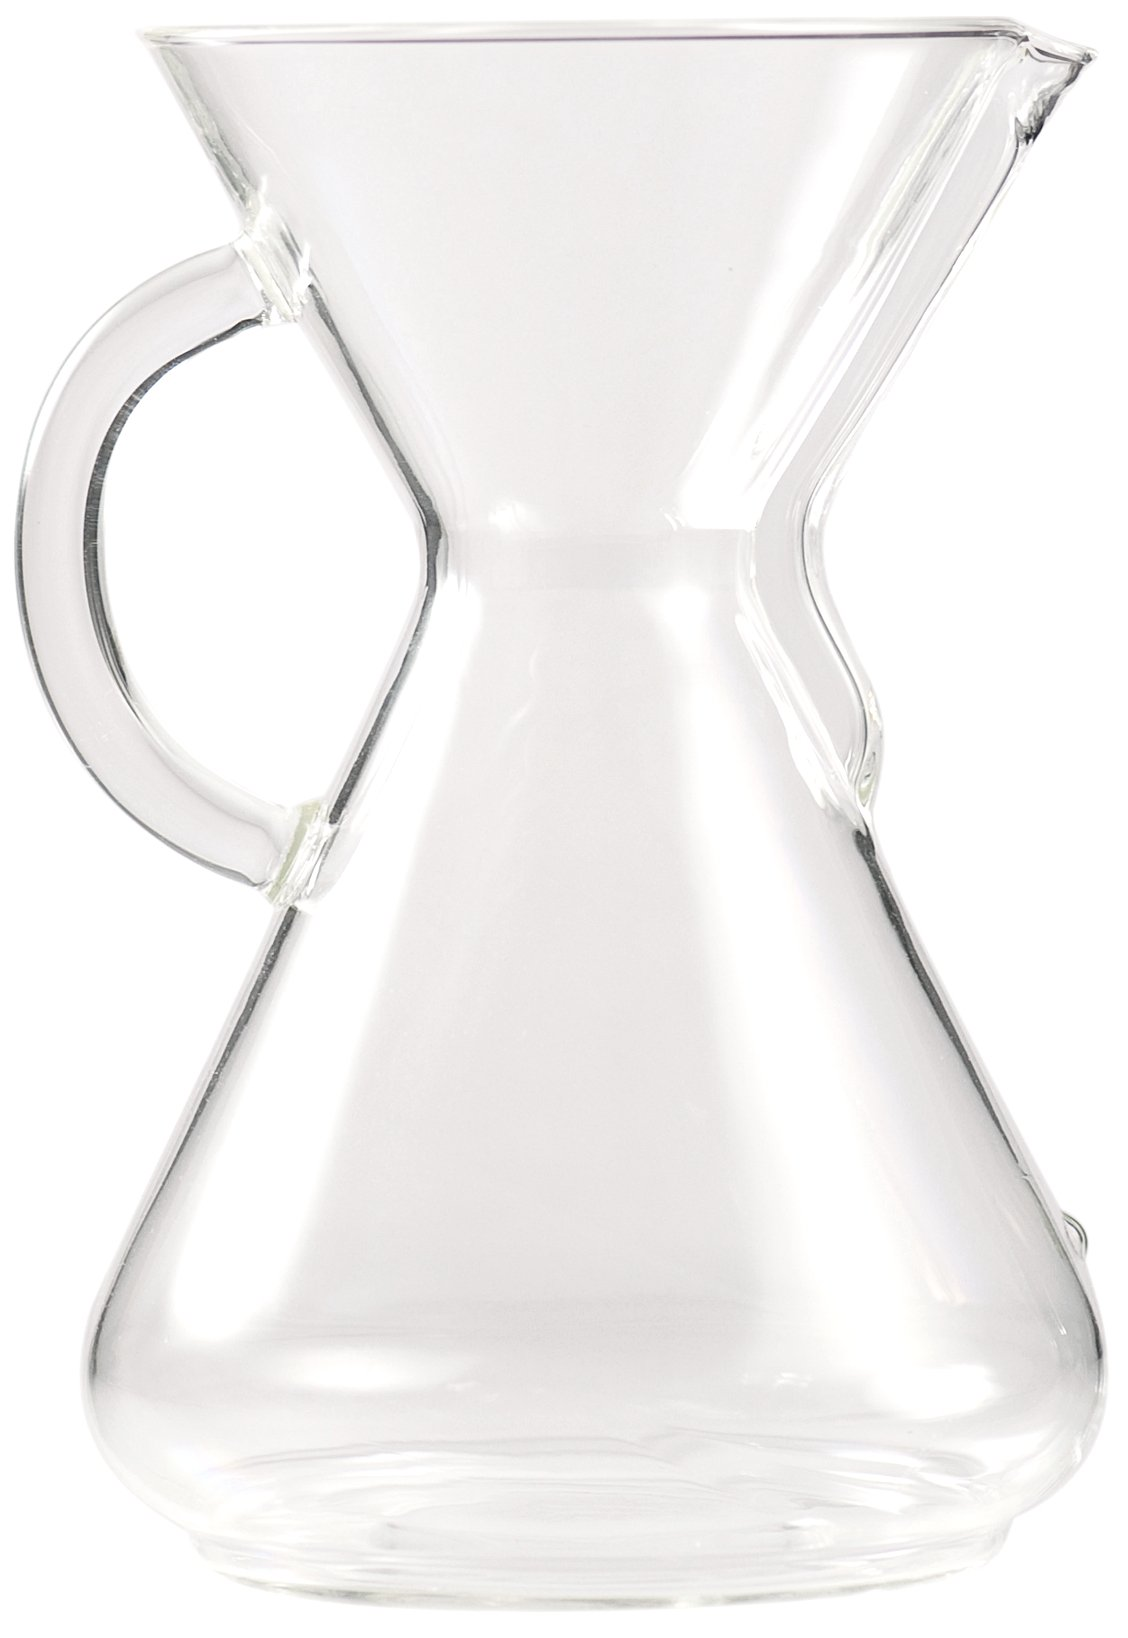 Chemex 10-Cup Coffeemaker with Glass Handle by Chemex